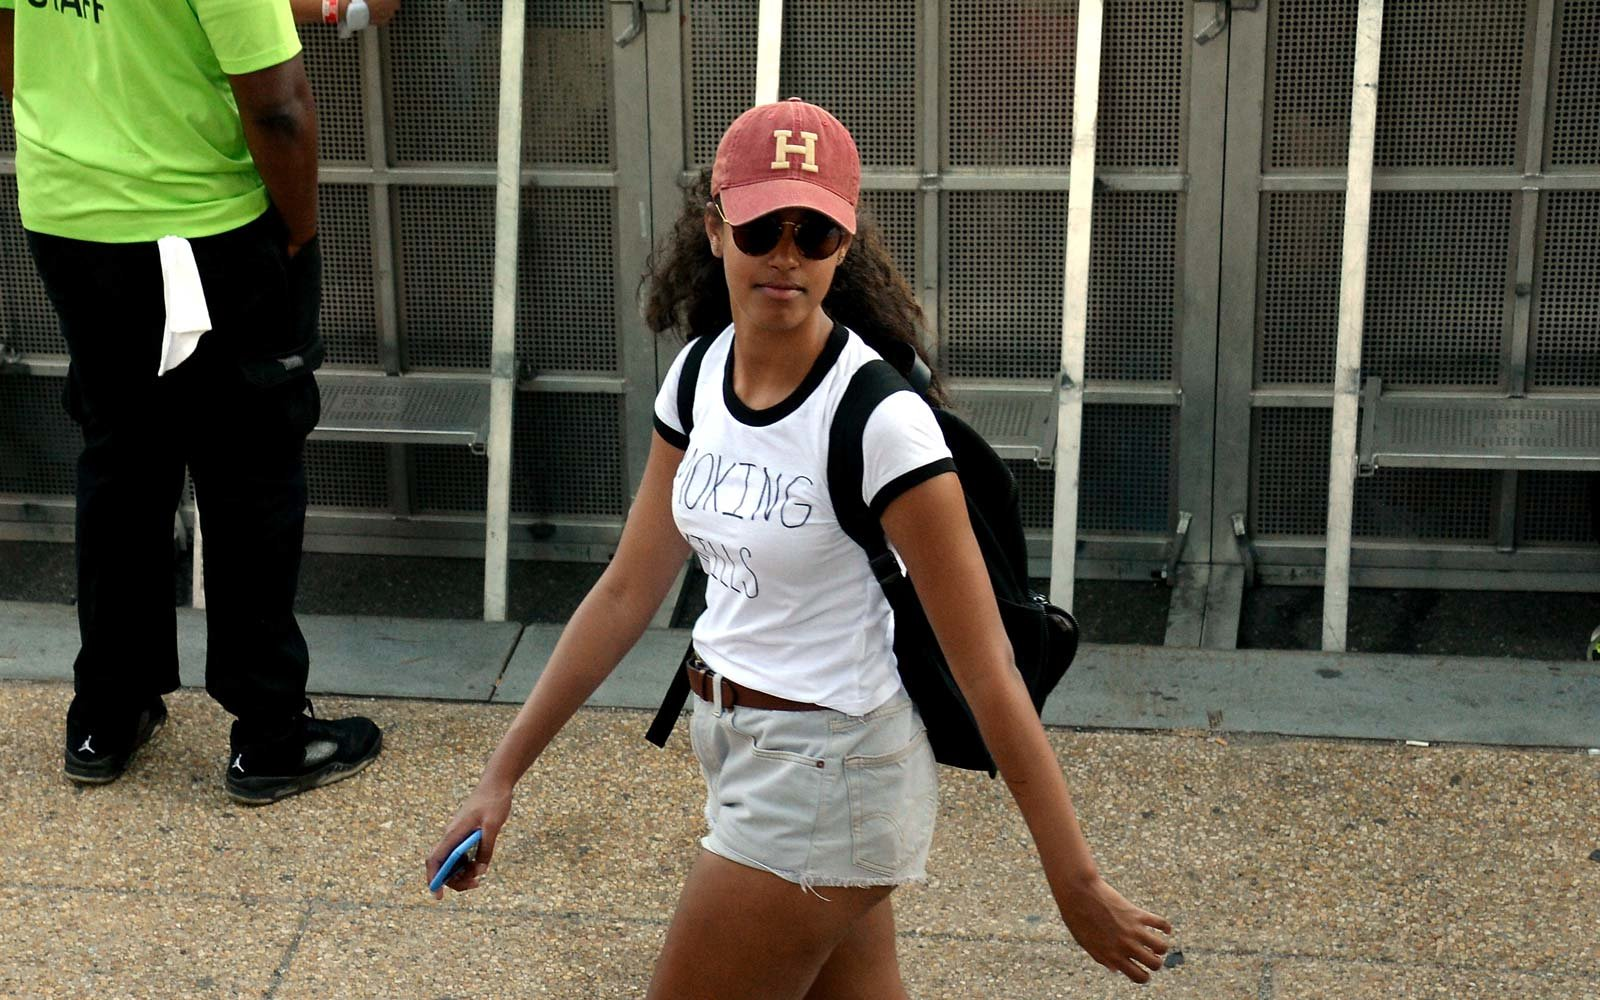 Shop the Comfy Shoes Malia Obama Brought to Harvard | Travel